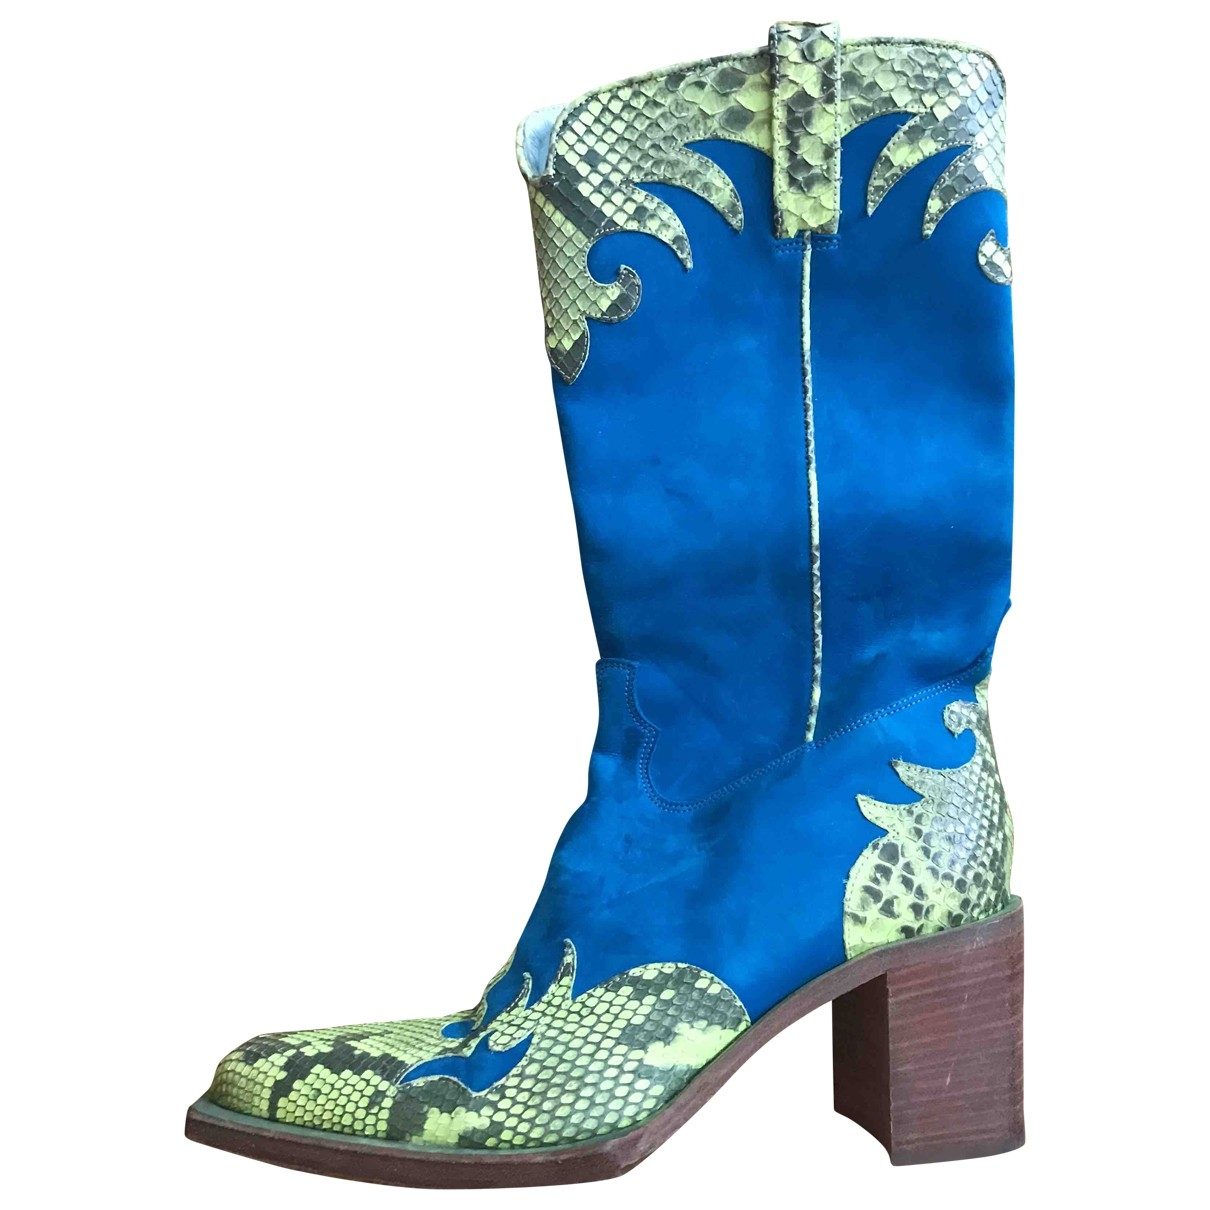 Free Lance \N Turquoise Python Boots for Women 37 EU